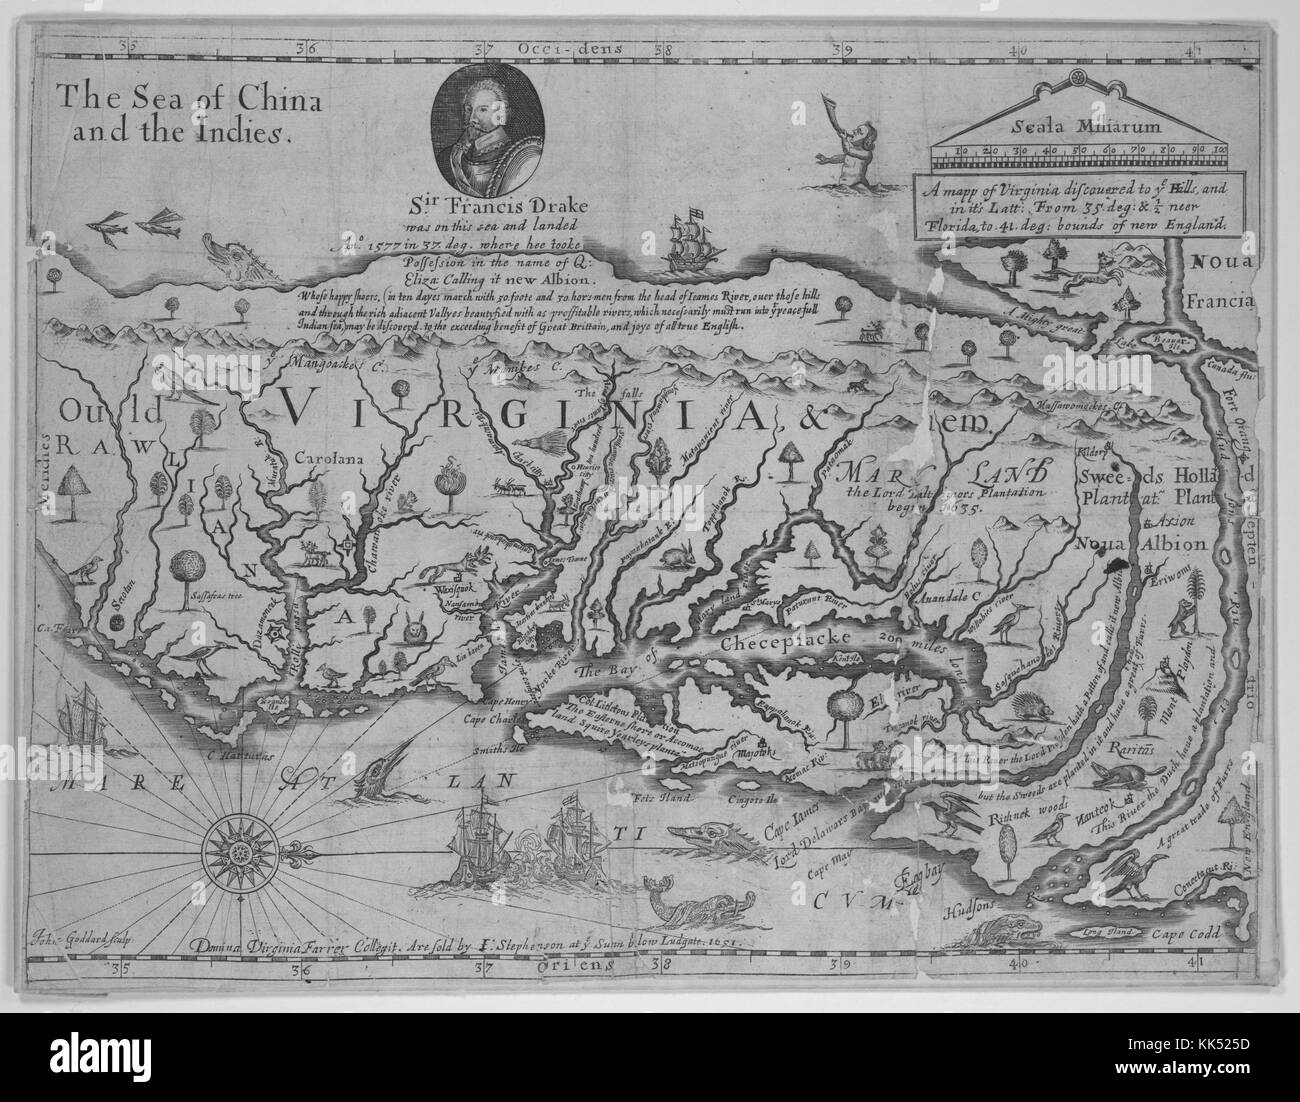 an explanation of the dissimilarities of the colonies in chesapeake and new england The colonies by 1763- a new society between the settlement at jamestown in 1607 and the treaty of paris in 1763, the most important change that occurred in the colonies was the extension of.